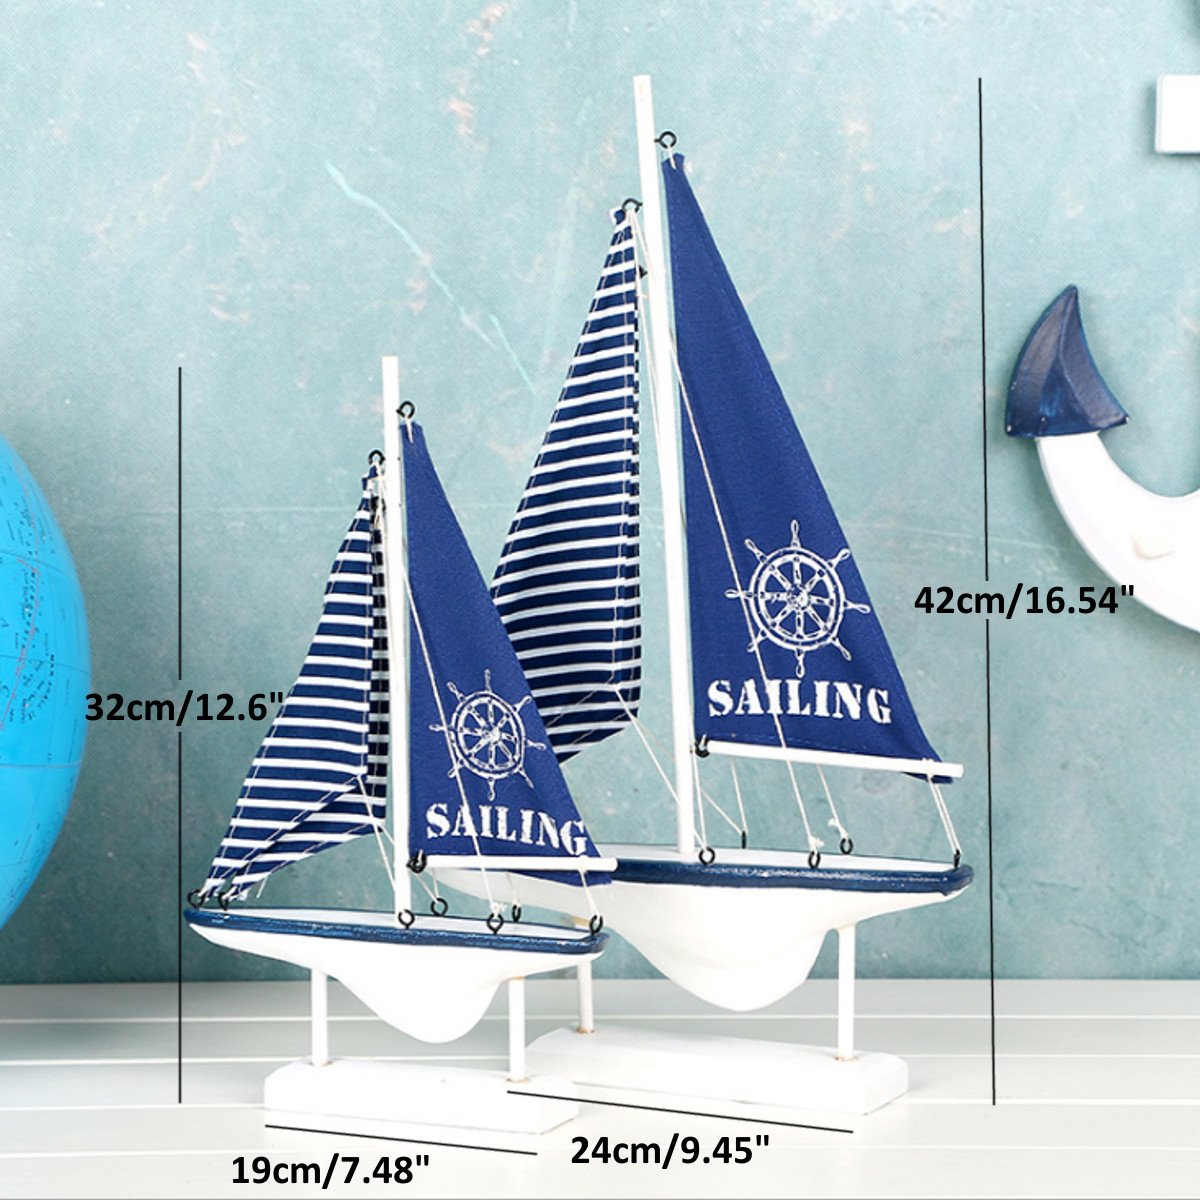 Ship-Assembly-Model-DIY-Kit-Wooden-Sailing-Boat-Decor-Wood-Toy-Gift-Collectables thumbnail 10